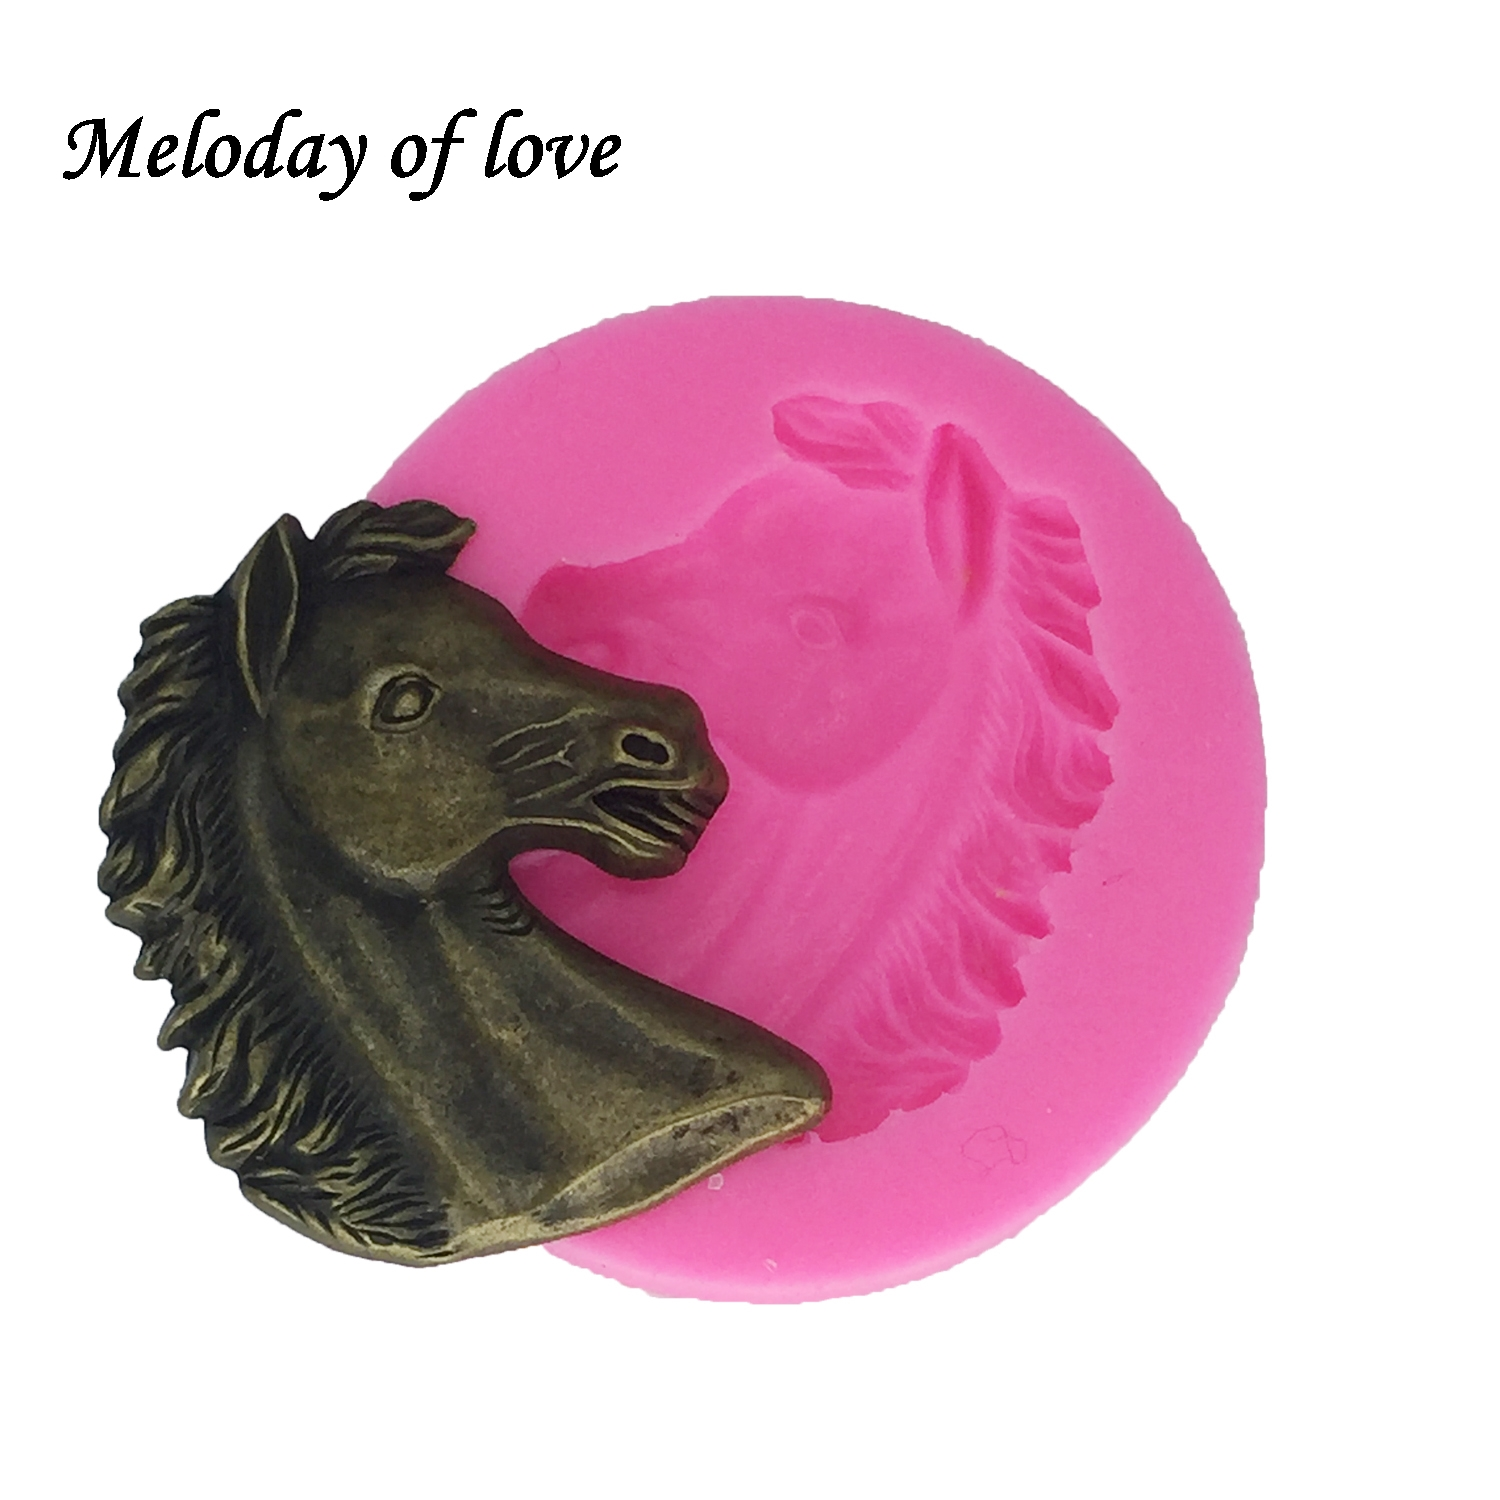 Horse head Silicone cake decorating tools Fondant moulds Sugar Craft Molds DIY Cake Sugarpaste Bakeware DY0010